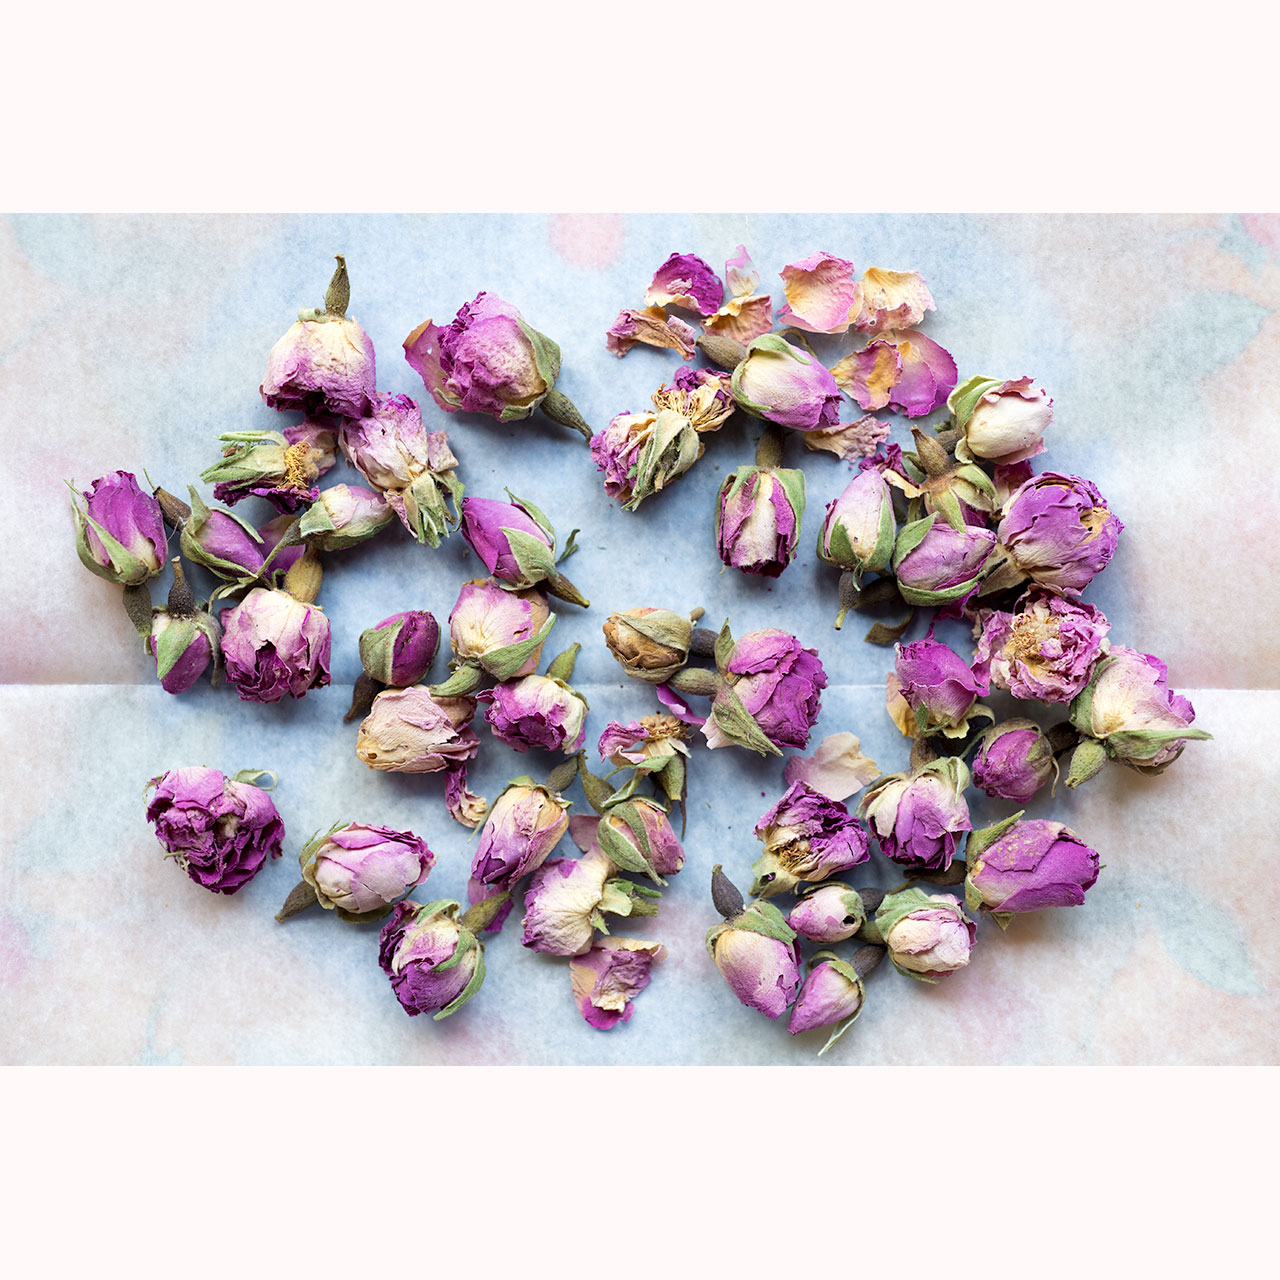 Edible Moroccan Pink Rose Buds